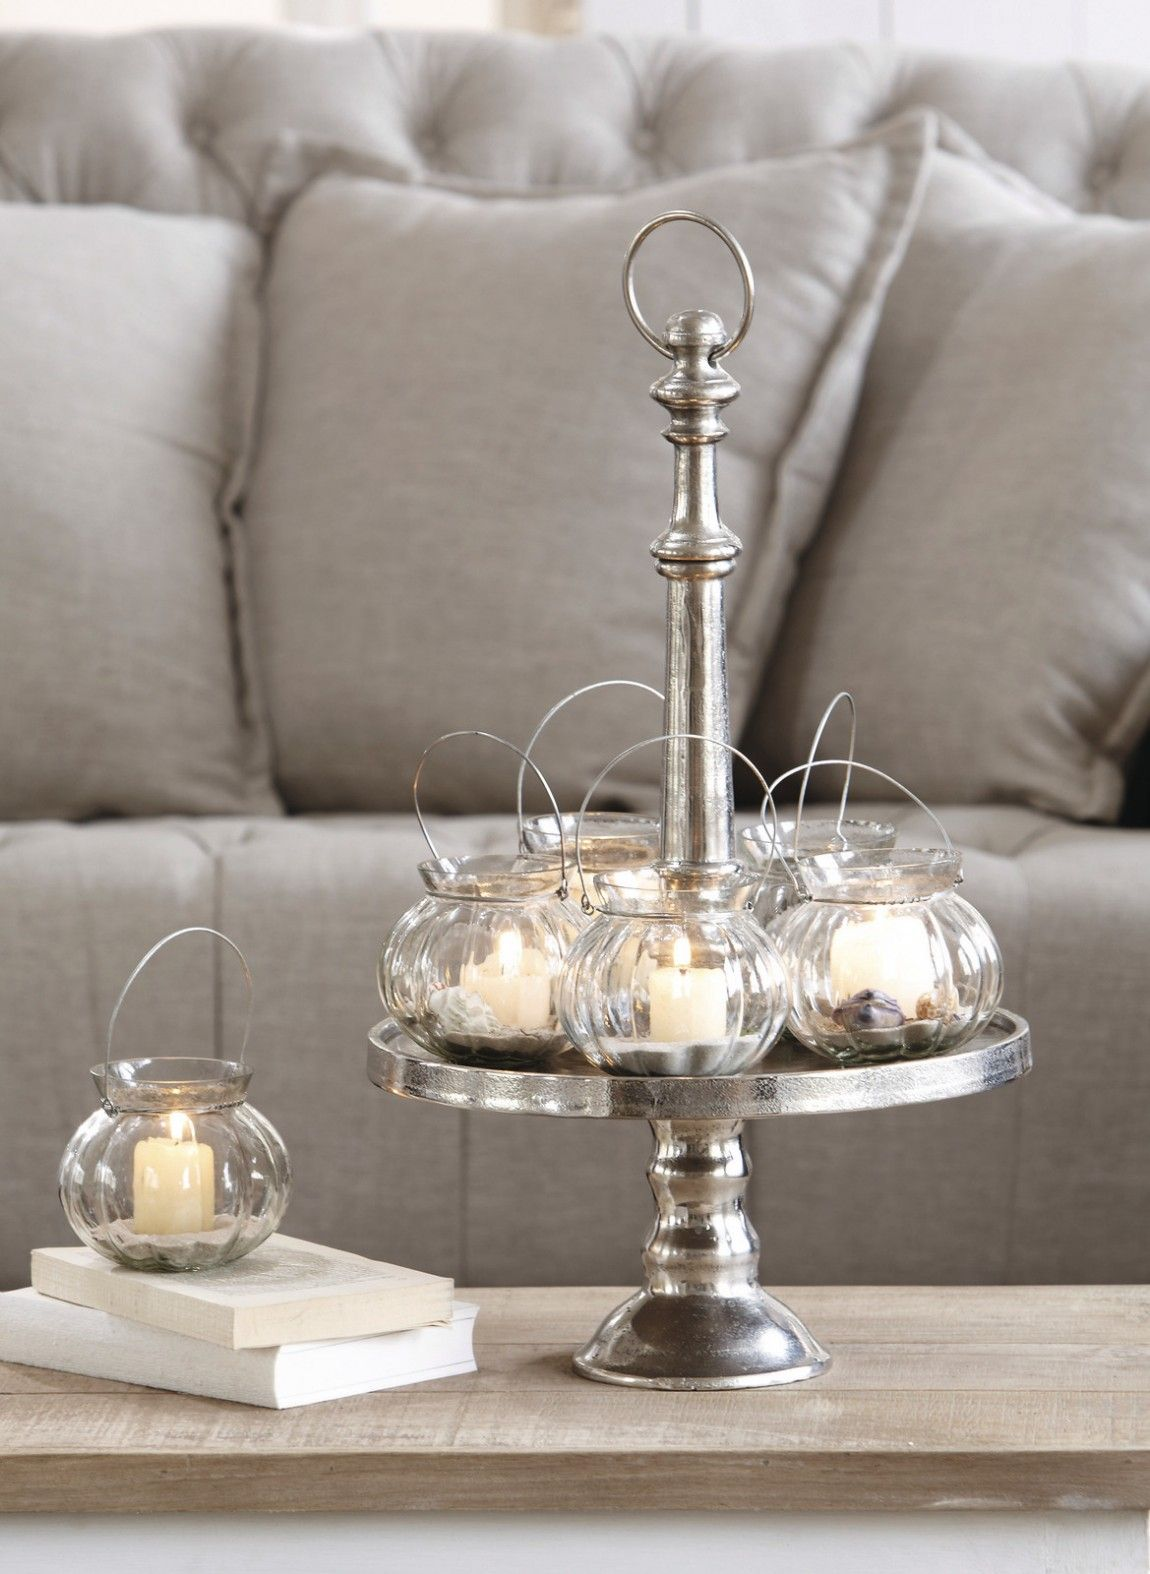 Pedestal cake stand used to display small lanterns for Riviera maison tisch